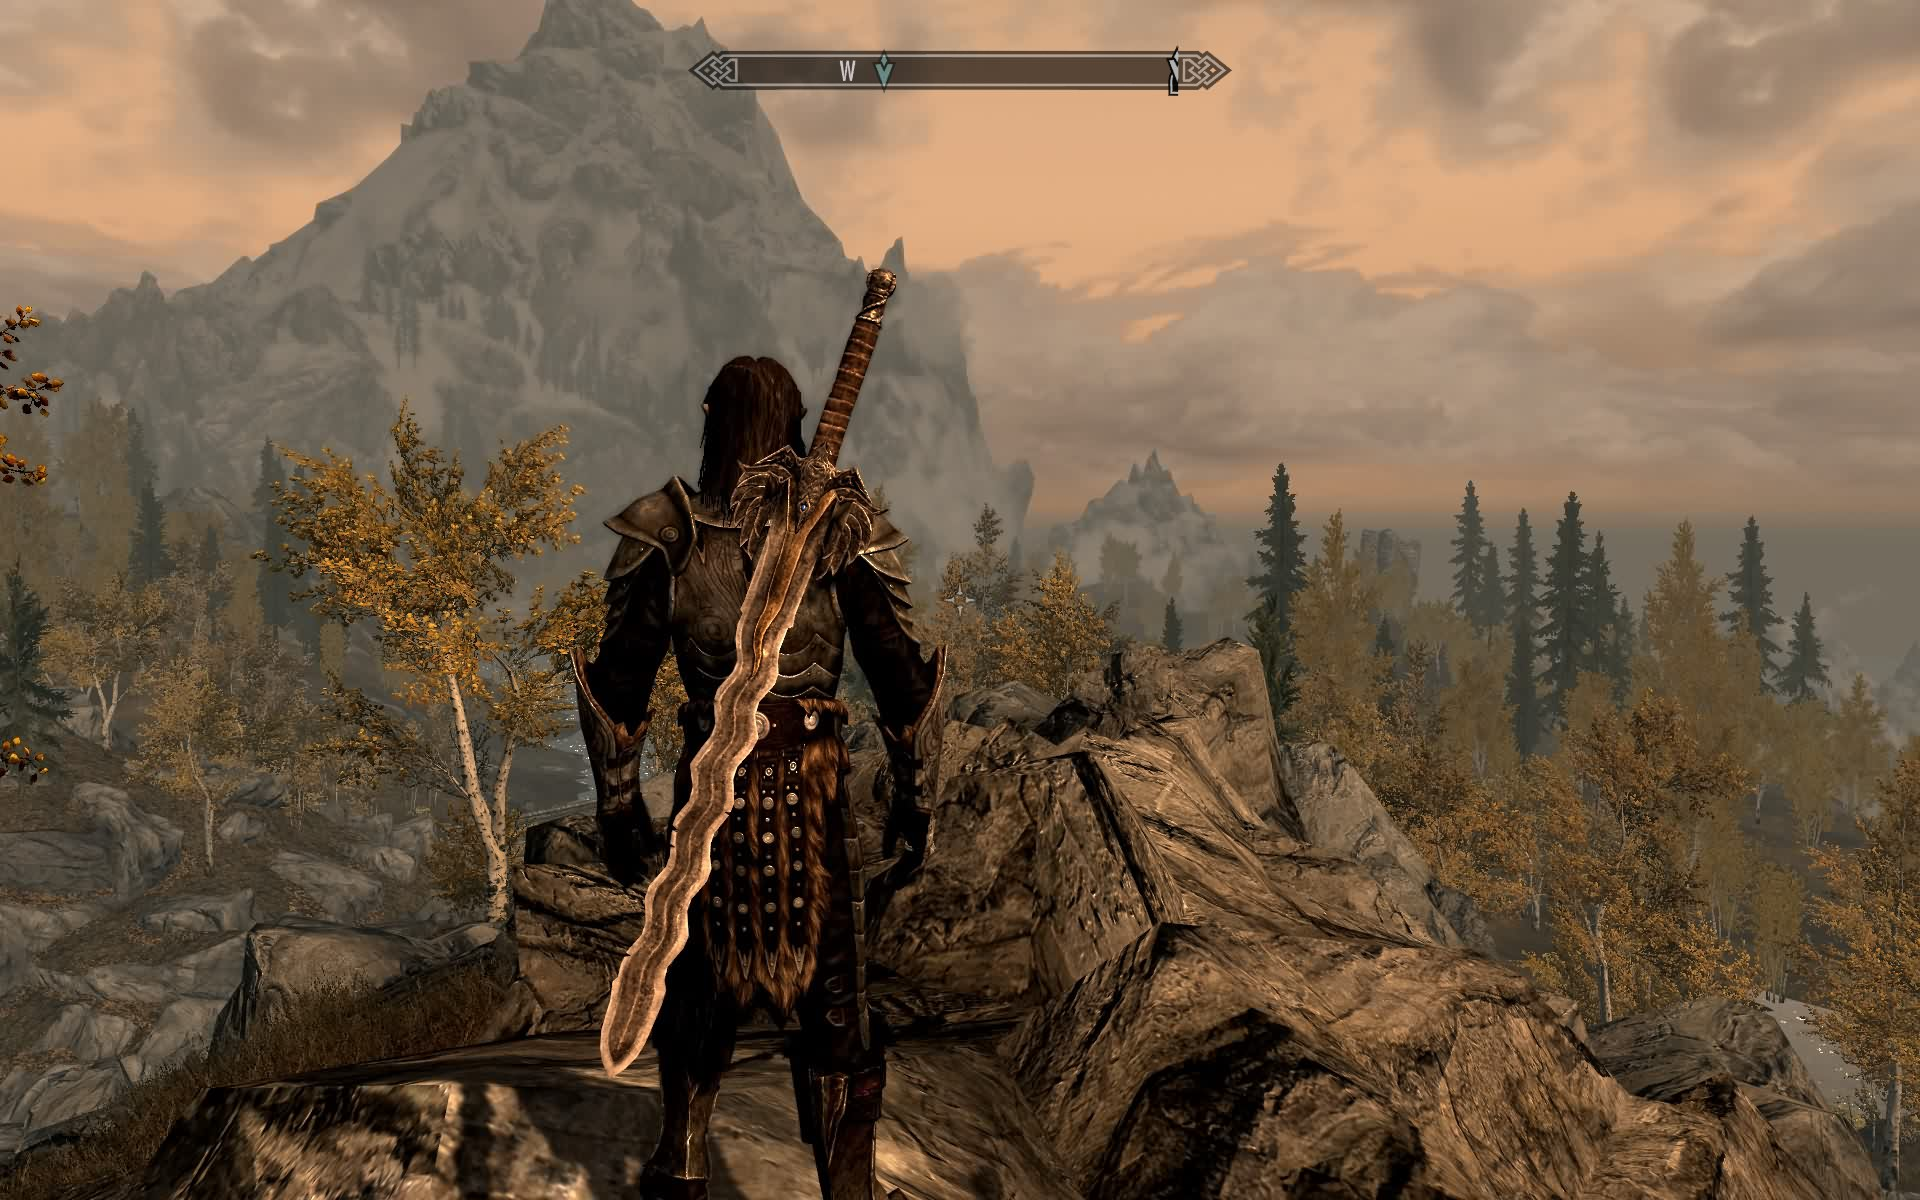 Skyrim Mod - The Sword Of The One Eyed Crow screenshot 4